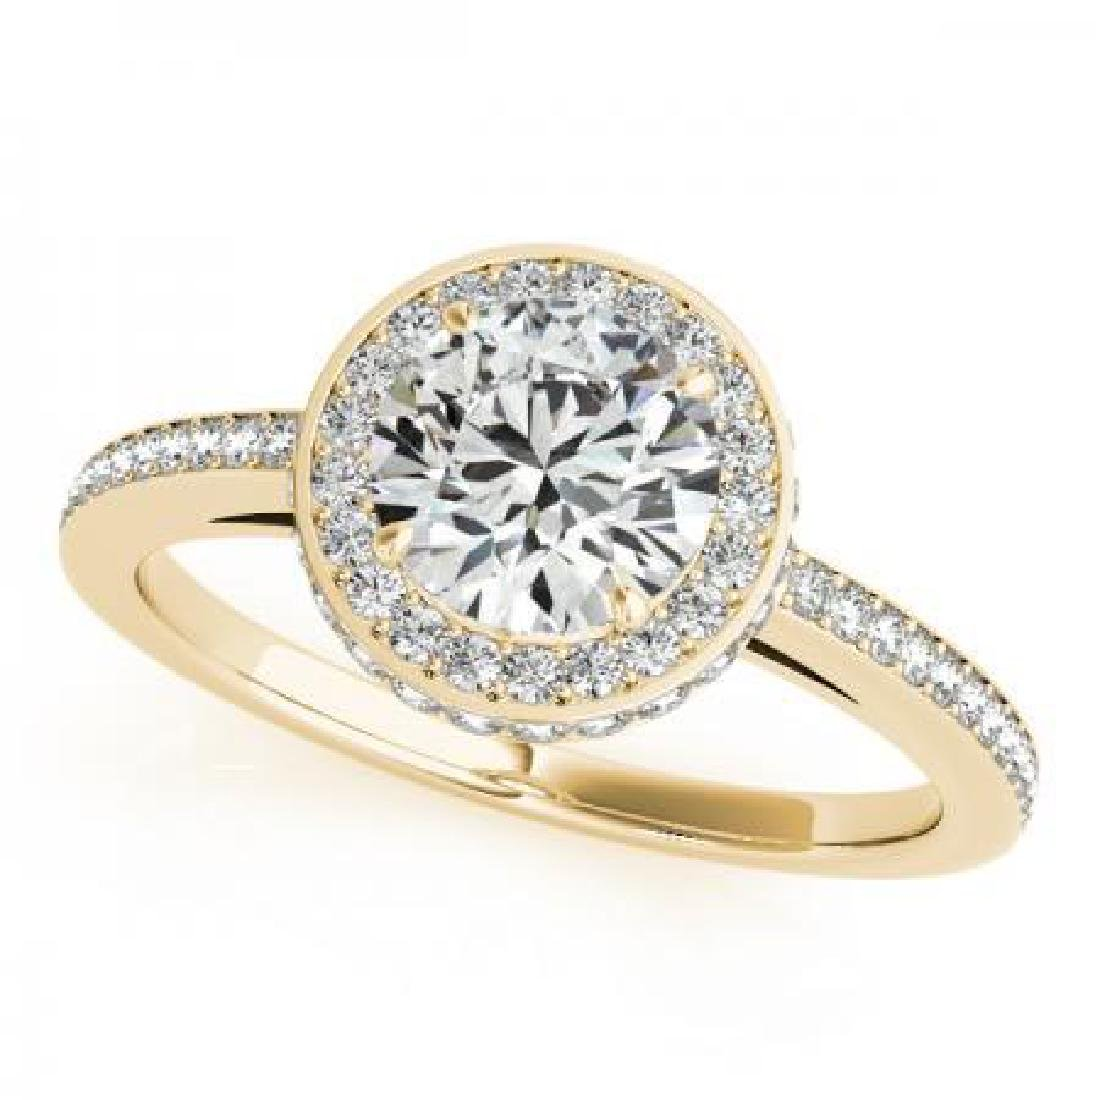 CERTIFIED 18K YELLOW GOLD 1.46 CT G-H/VS-SI1 DIAMOND HA